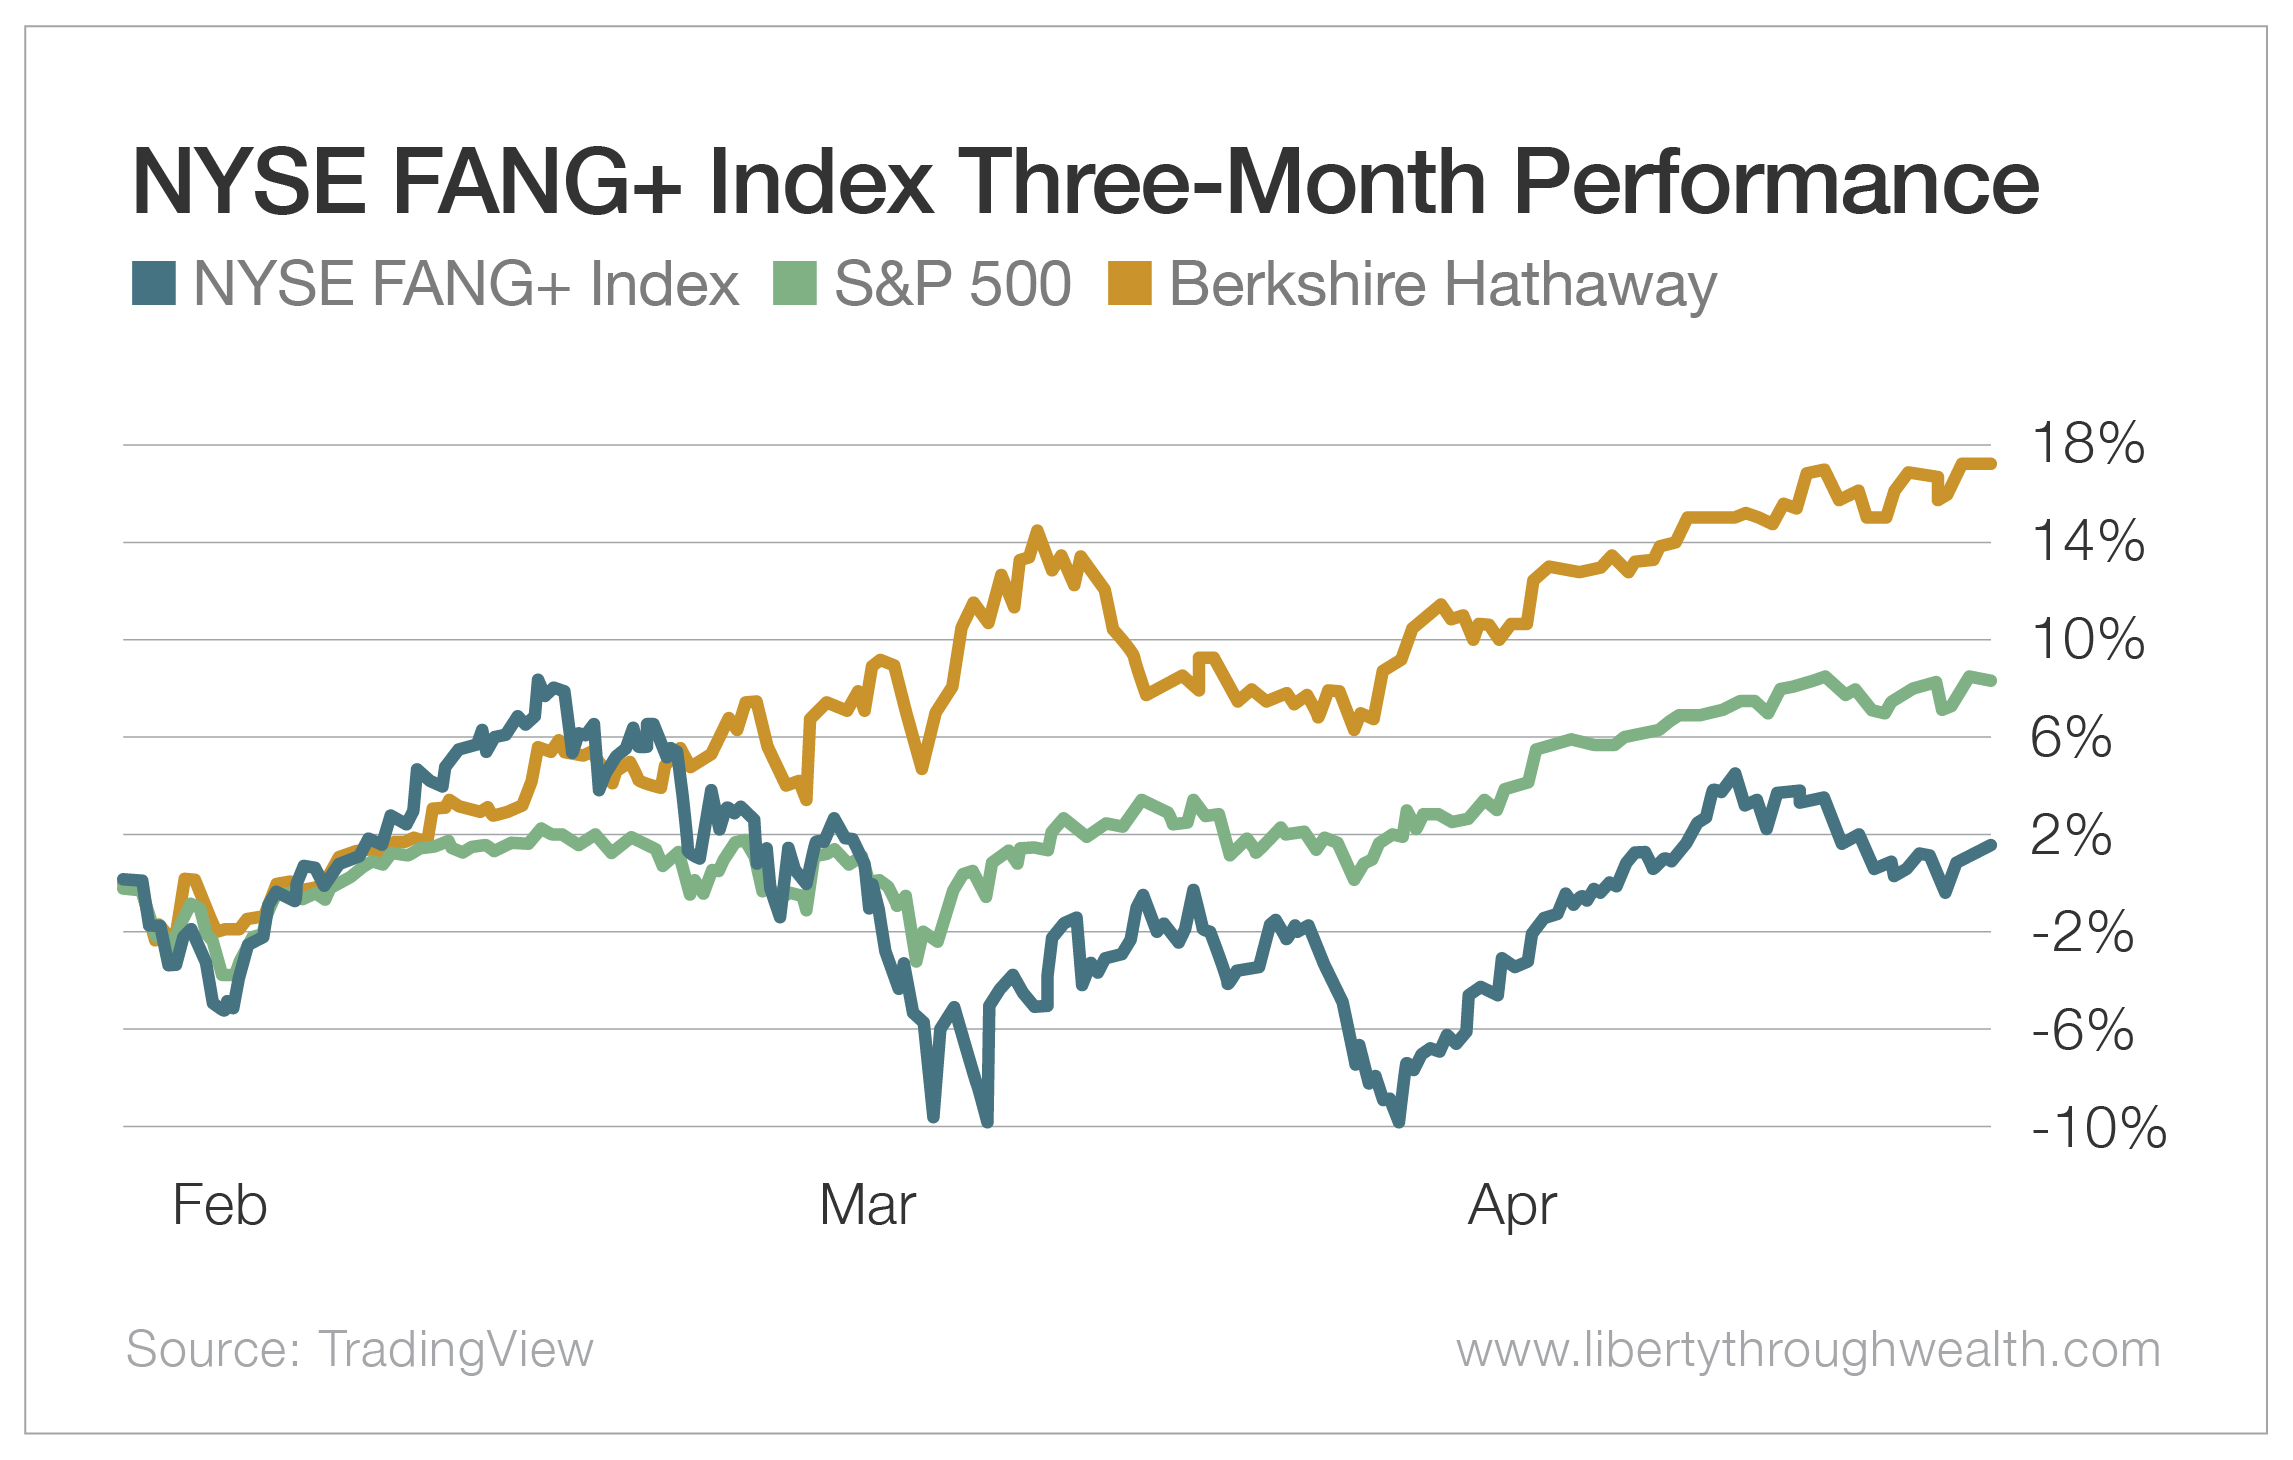 NYSE FANG+ Index Three-Month Performance